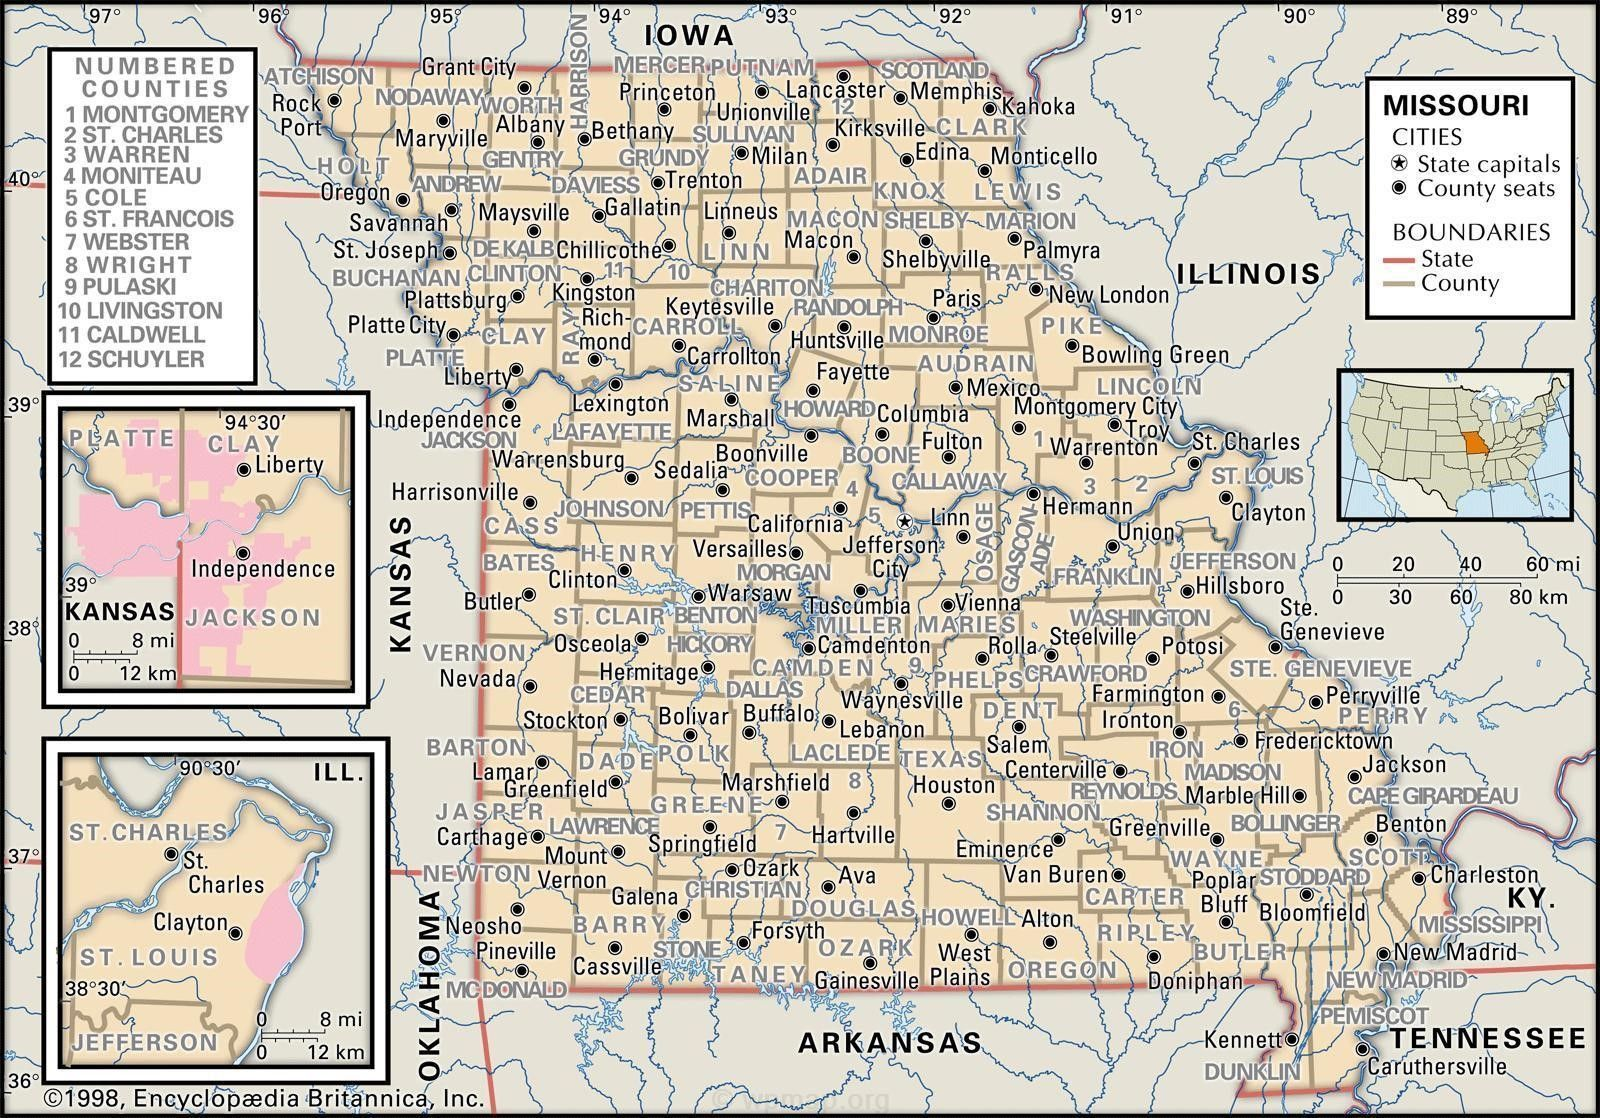 map of missouri cities and towns Check more at | maps | County map Kansas State Map With Cities And Counties on kansas state map postcard, kansas main cities, kansas counties and cities list, kansas state major cities, kansas map with all cities, state of kansas cities, alabama county map of counties and cities, kansas with capital, va maps with counties and cities, kansas counties and county seats, printable kansas map with cities, ks map with cities, kansas map with all counties, kansas information, kansas state product map, kansas county plat maps, kansas map with cities only, kansas county map with cities, kansas state map kansas,